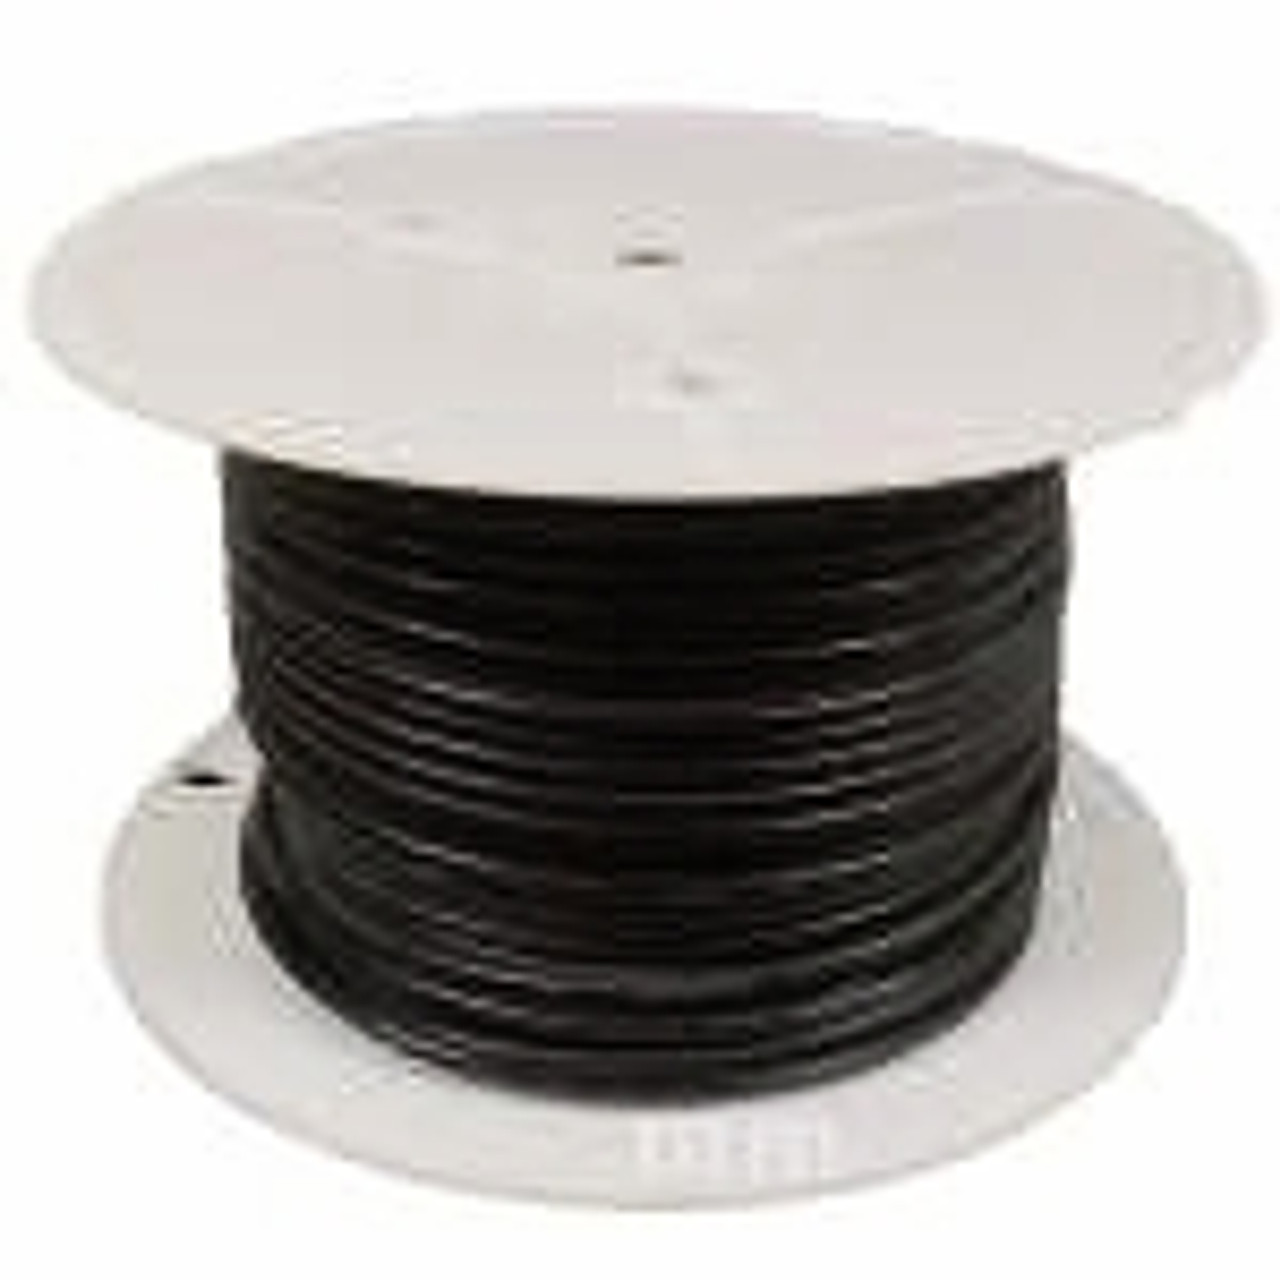 DownUnder 5/8 in. Aeration Tubing (200 ft Reel)